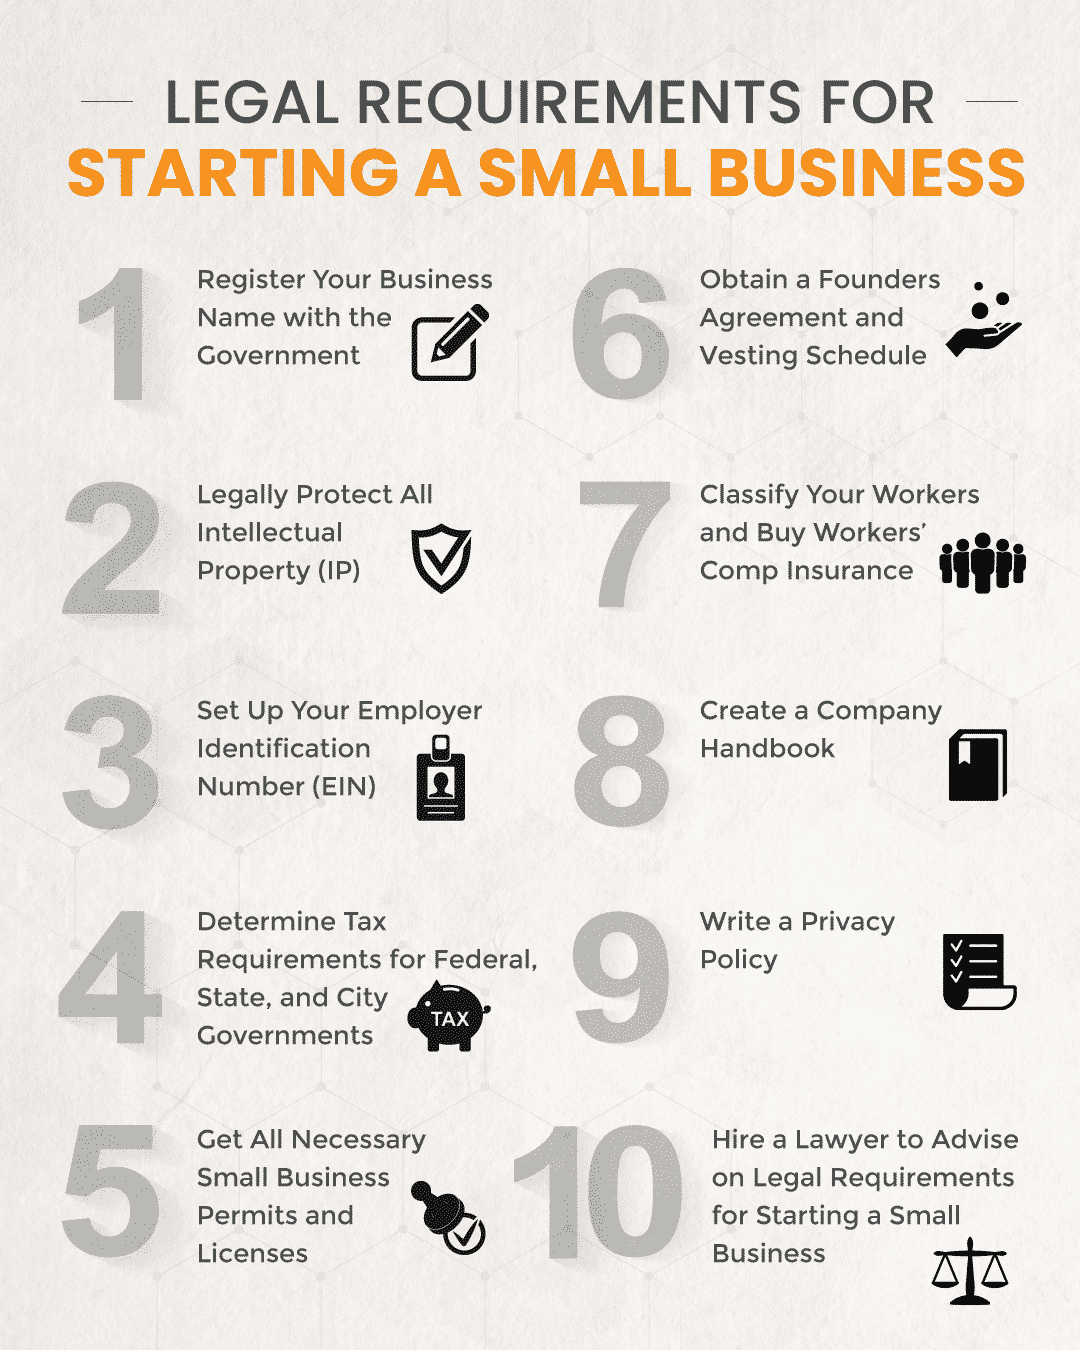 Legal Requirements for Starting an Small Business Infographic featuring 10 items